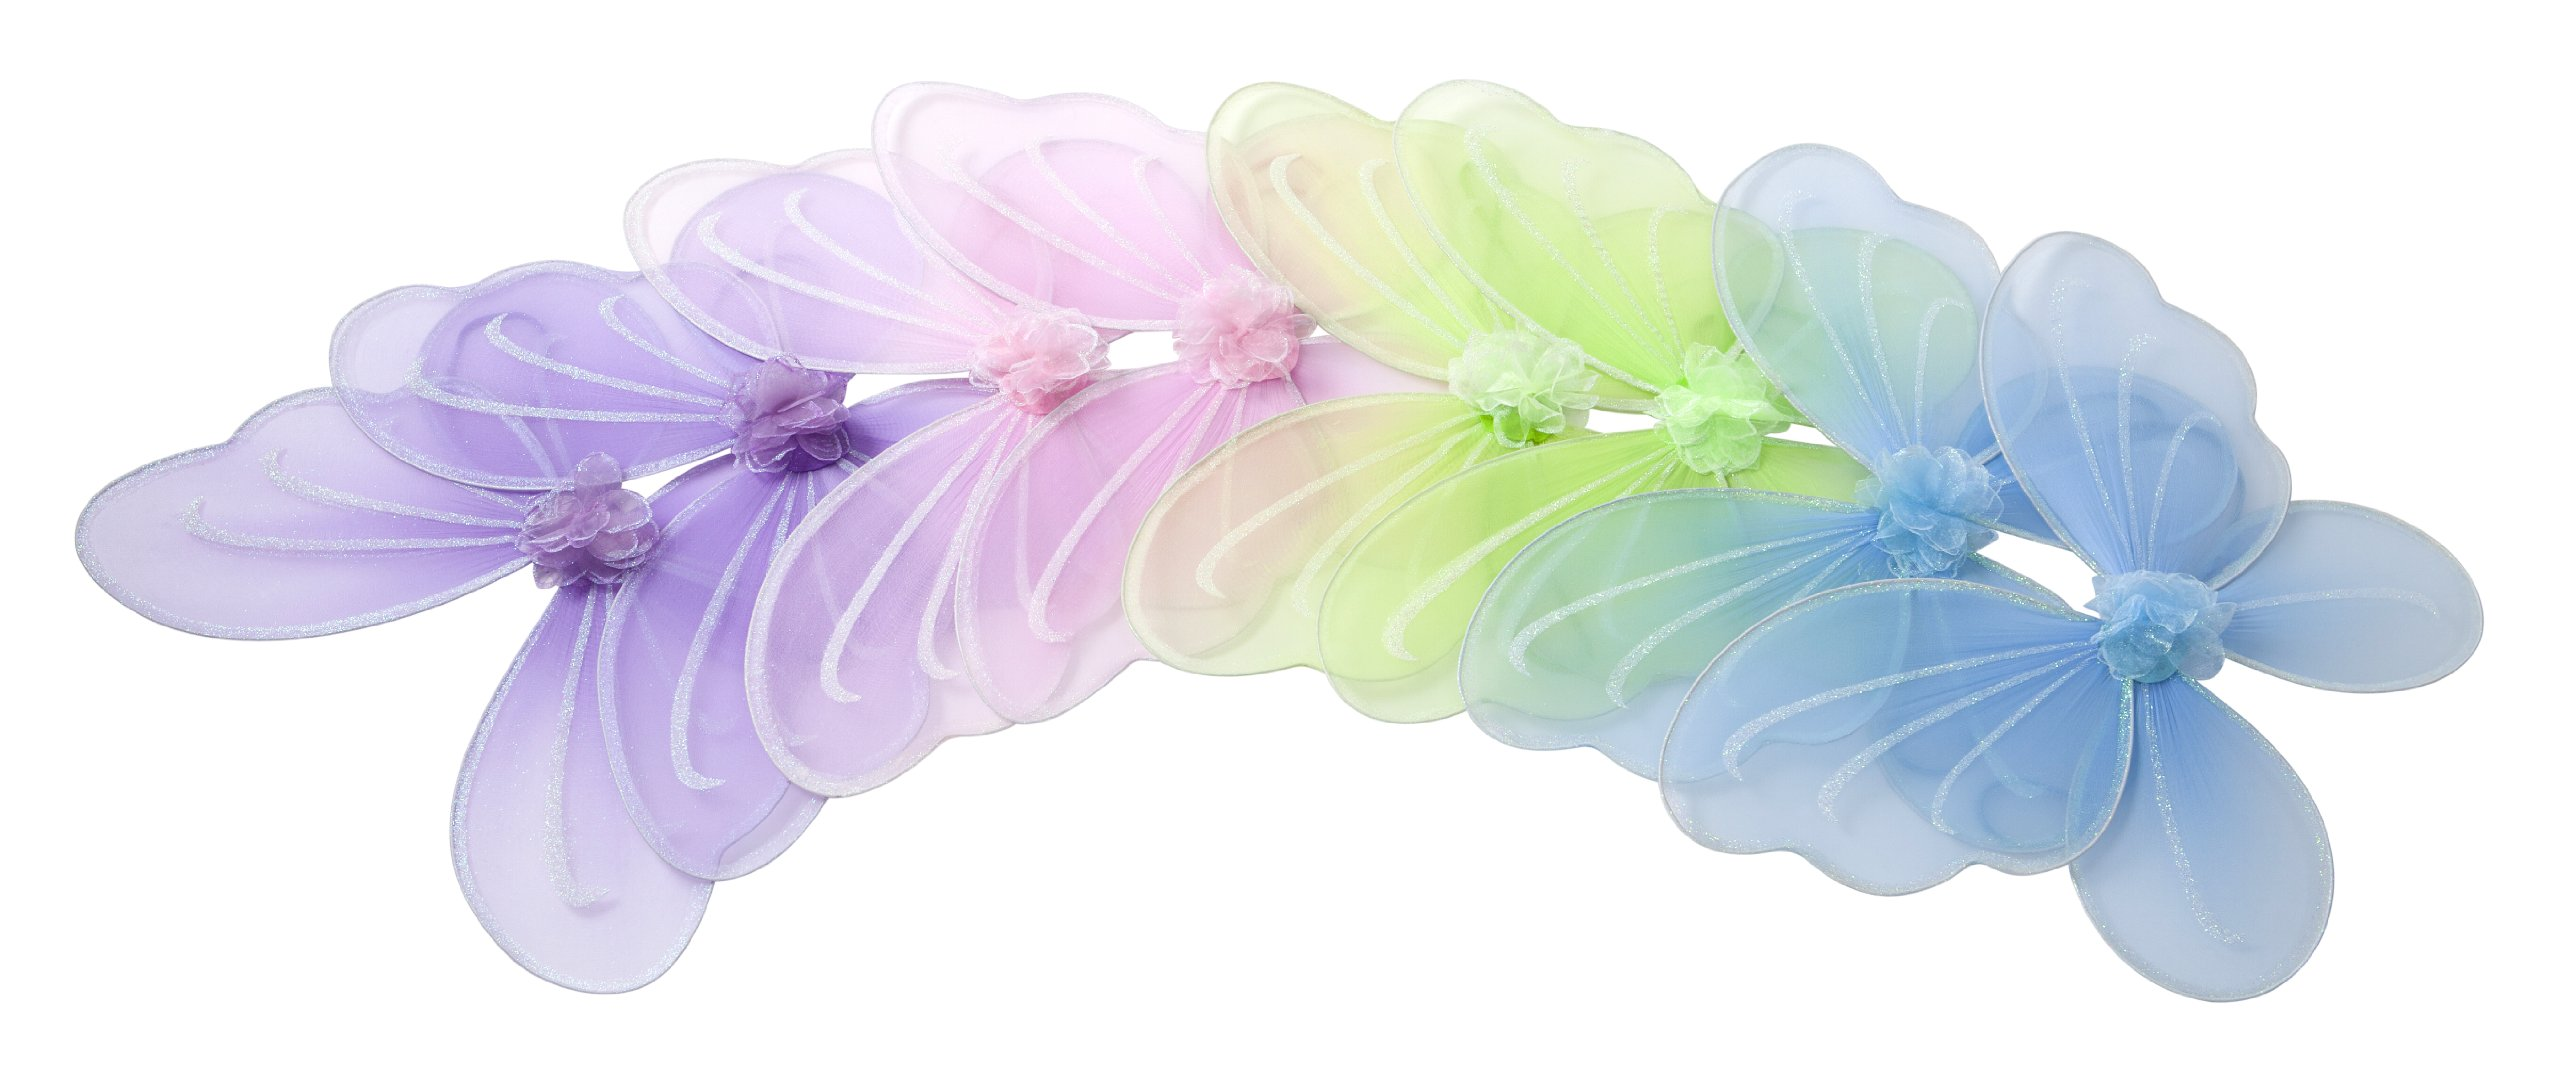 Girls Butterfly, Fairy, And Angel Wings For Kids. For Garden Parties, Birthday Favors, Halloween Costumes, And More. Set of 8. Multi Color